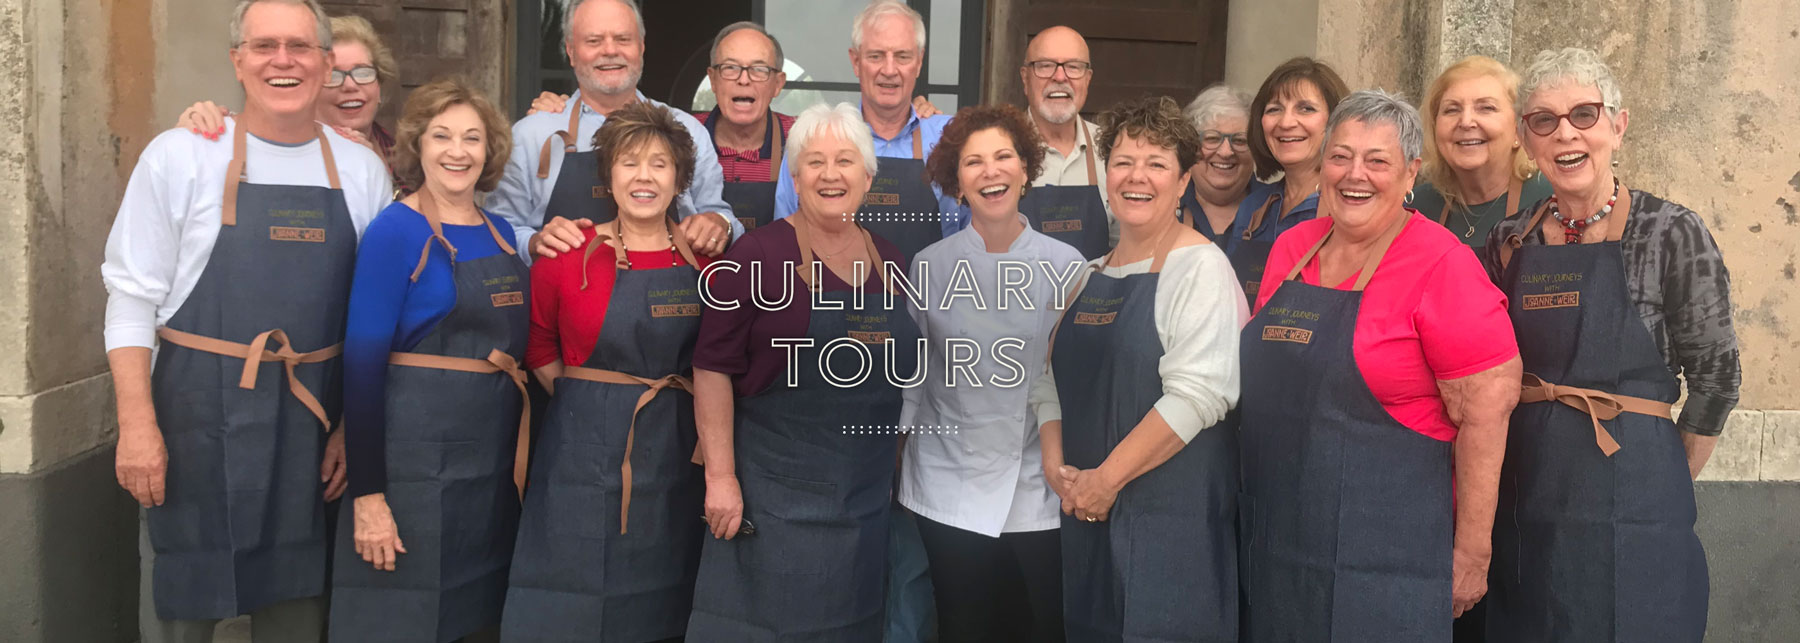 Culinary Tour Cooking Class Group